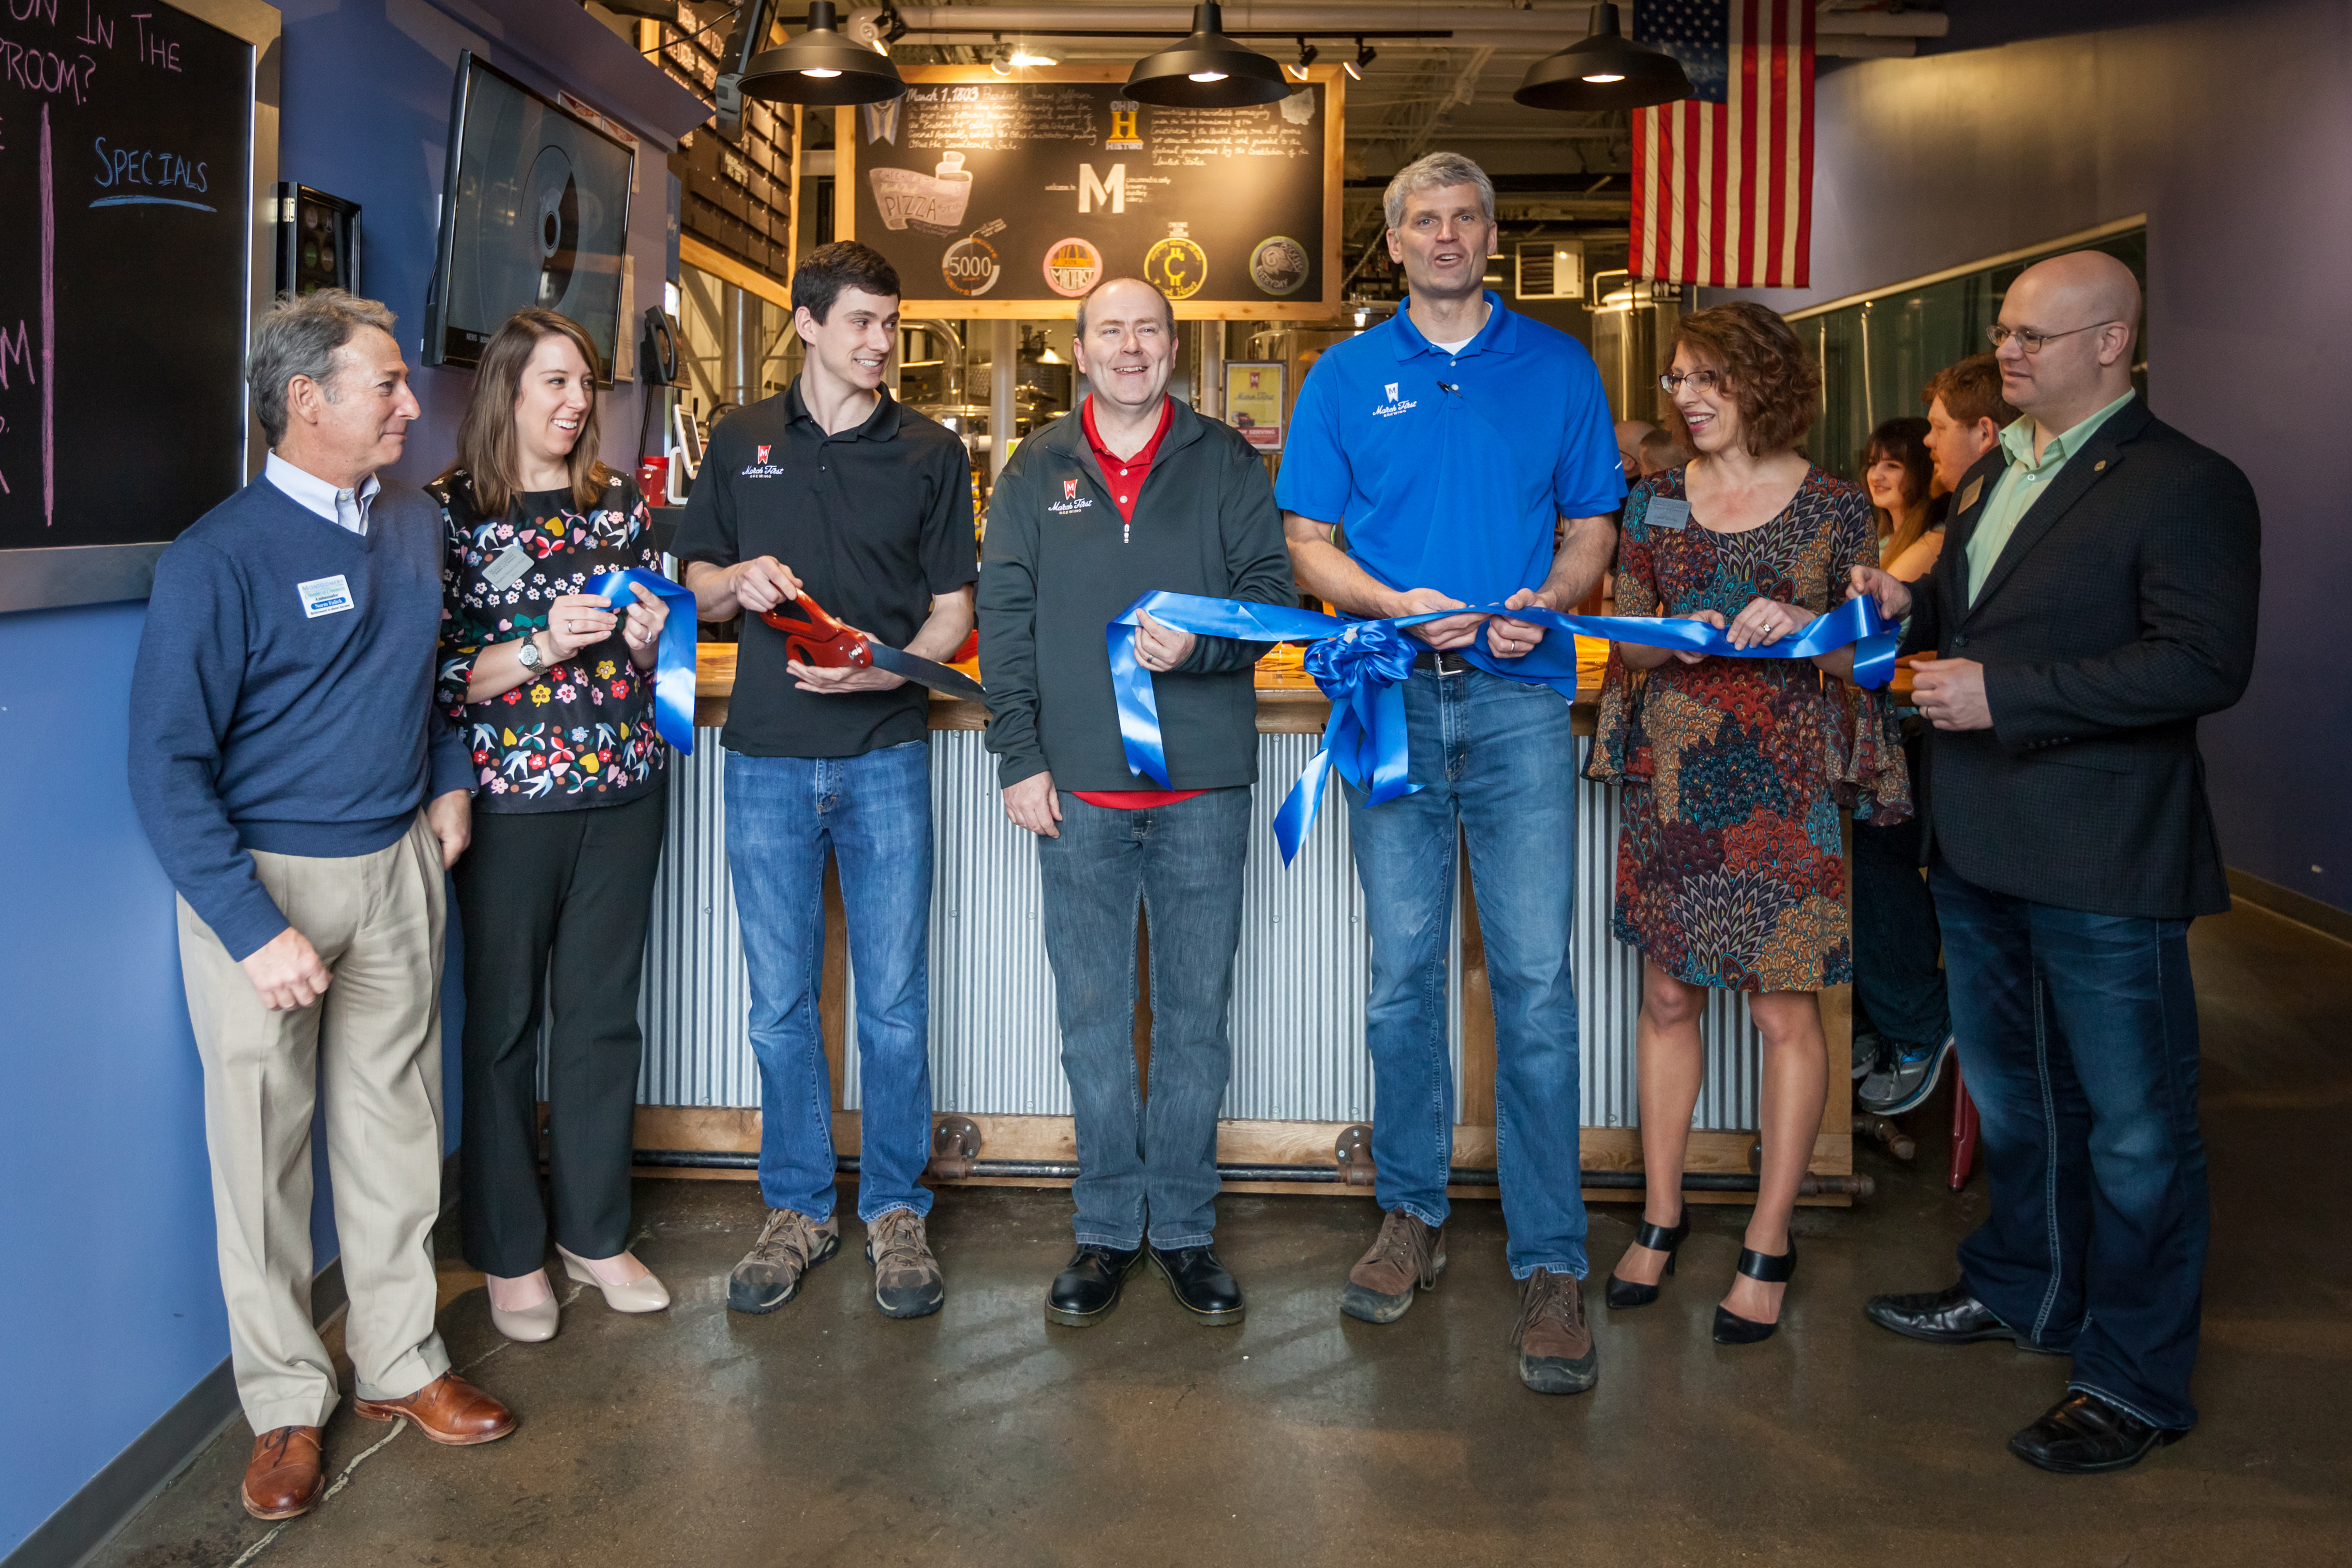 Seven people smiling while one cuts a blue ribbon with large red scissors